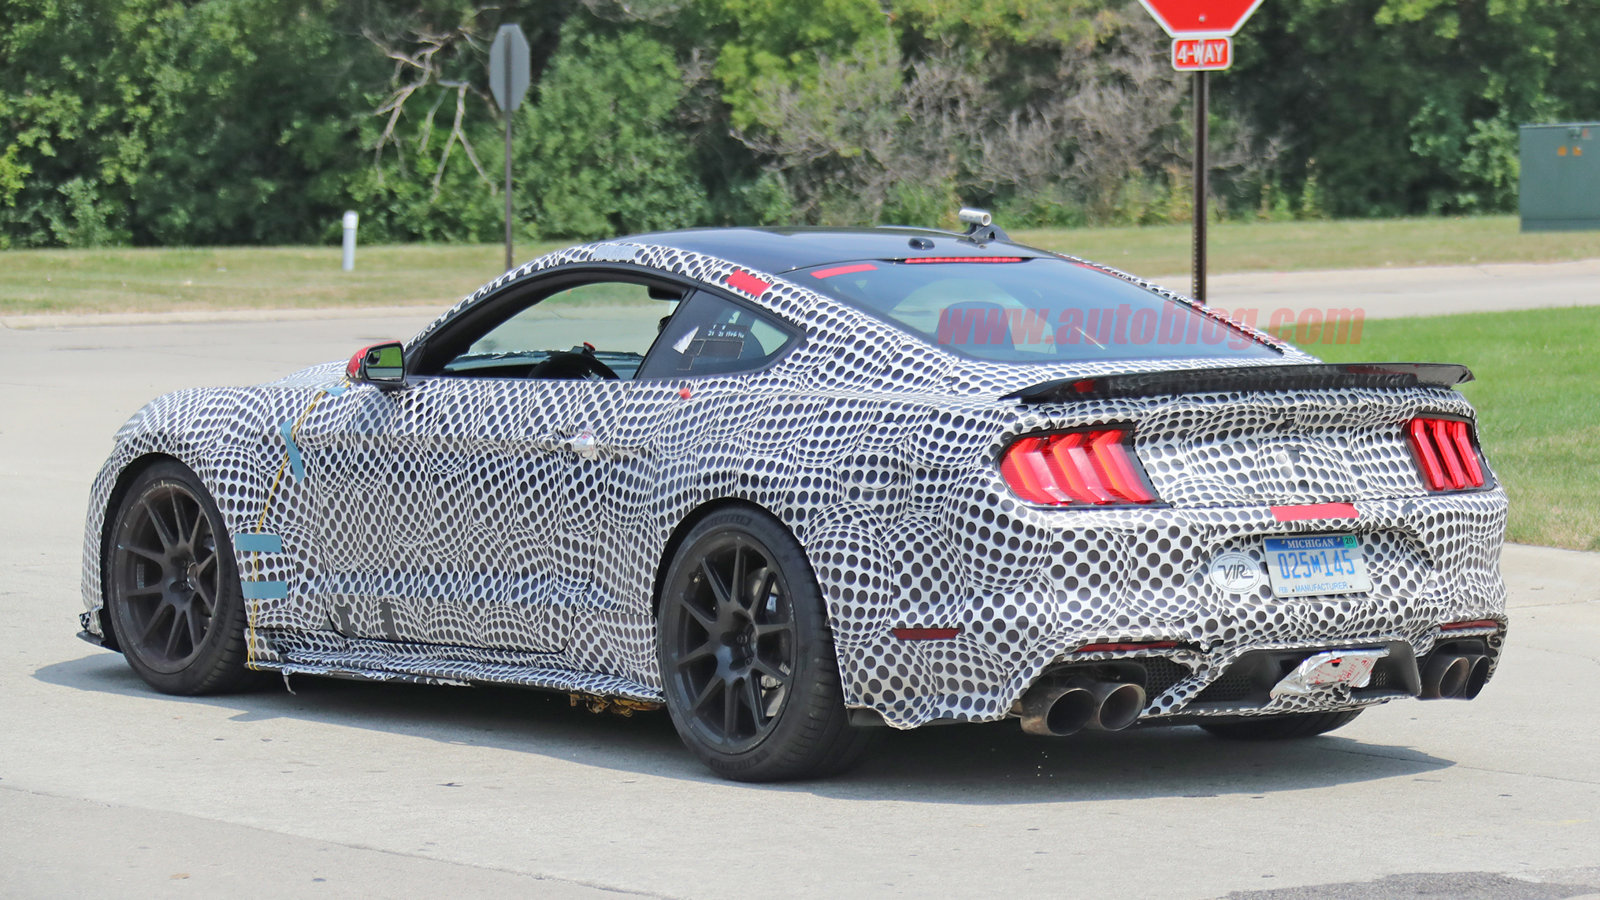 2019-ford-mustang-shelby-gt500-12-1.jpg